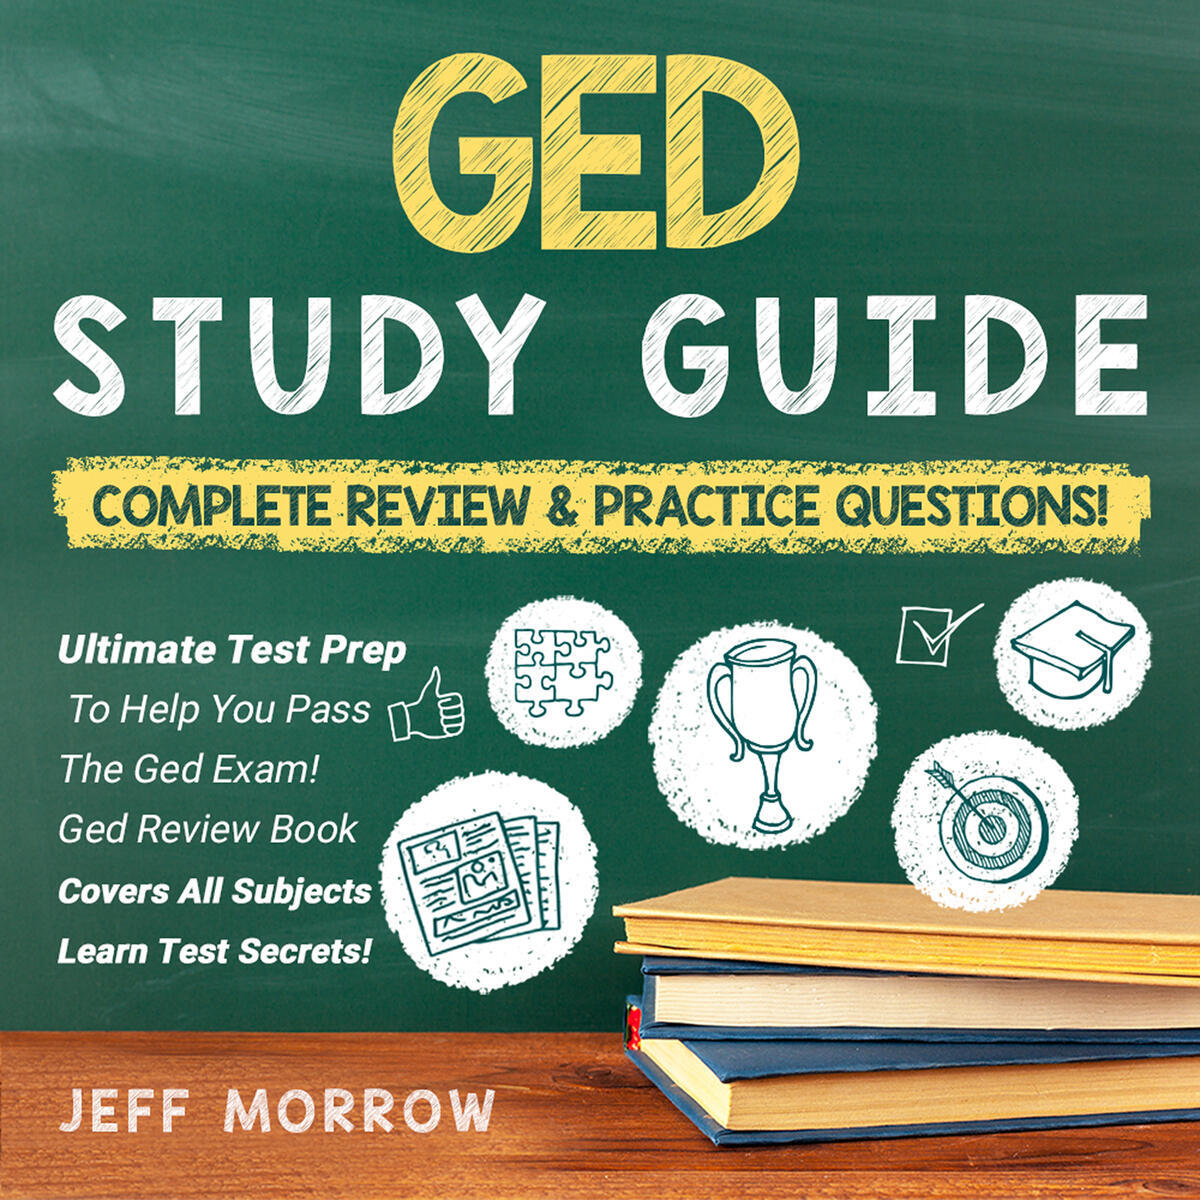 (Audible Audiobook) Ged Study Guide - Pass The GED Exam - Over 10 Hours!